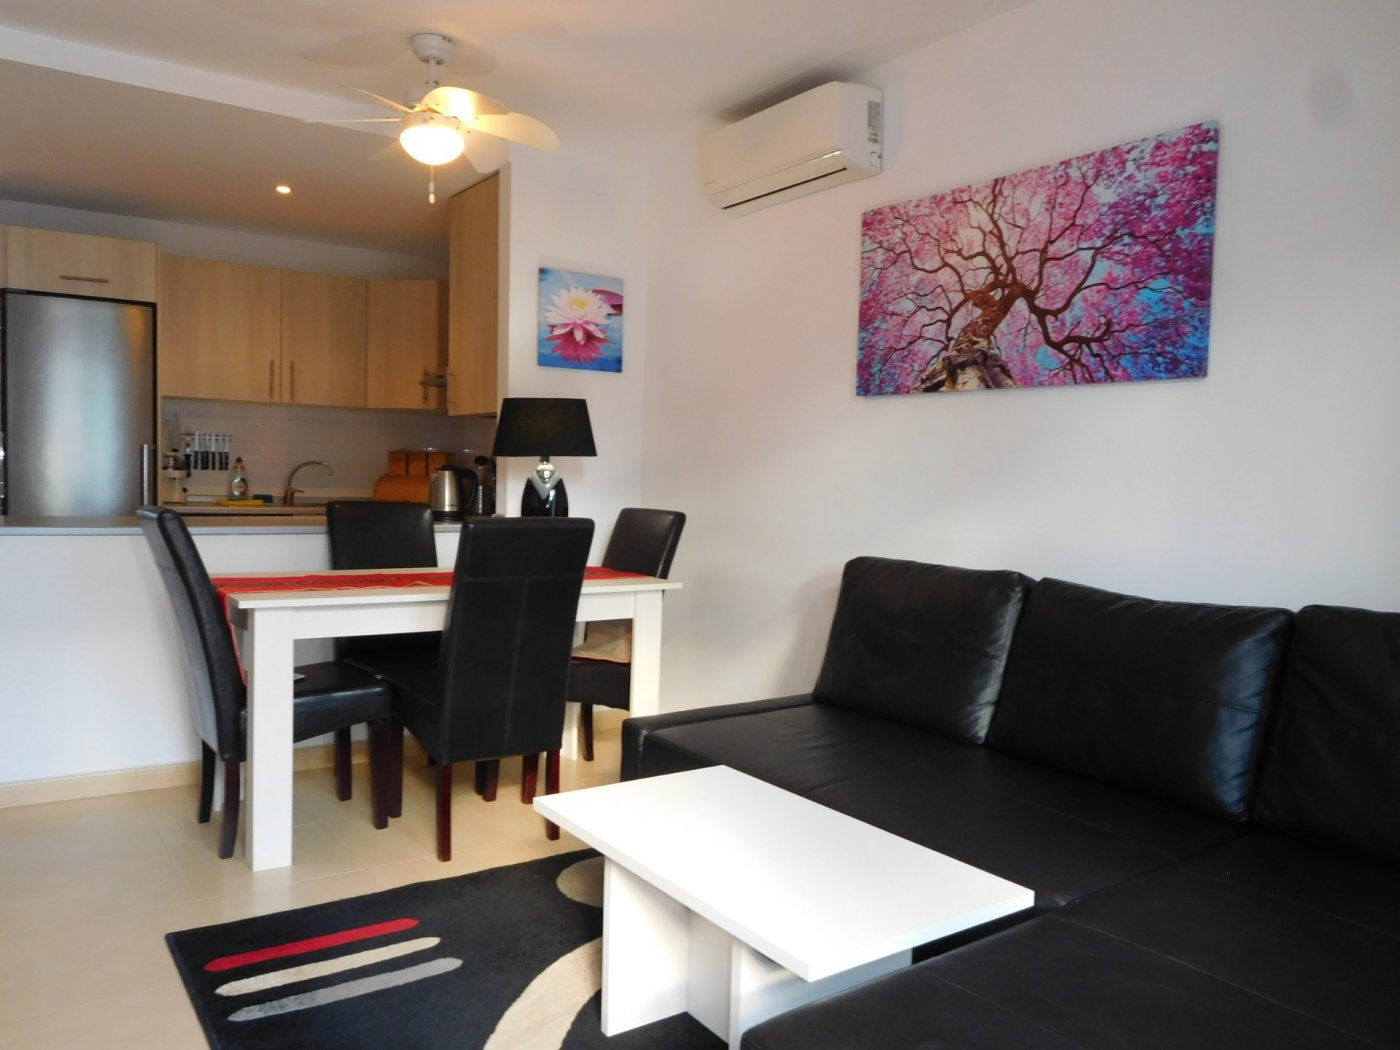 Gallery Image 14 of Flat For rent in Condado De Alhama, Alhama De Murcia With Pool